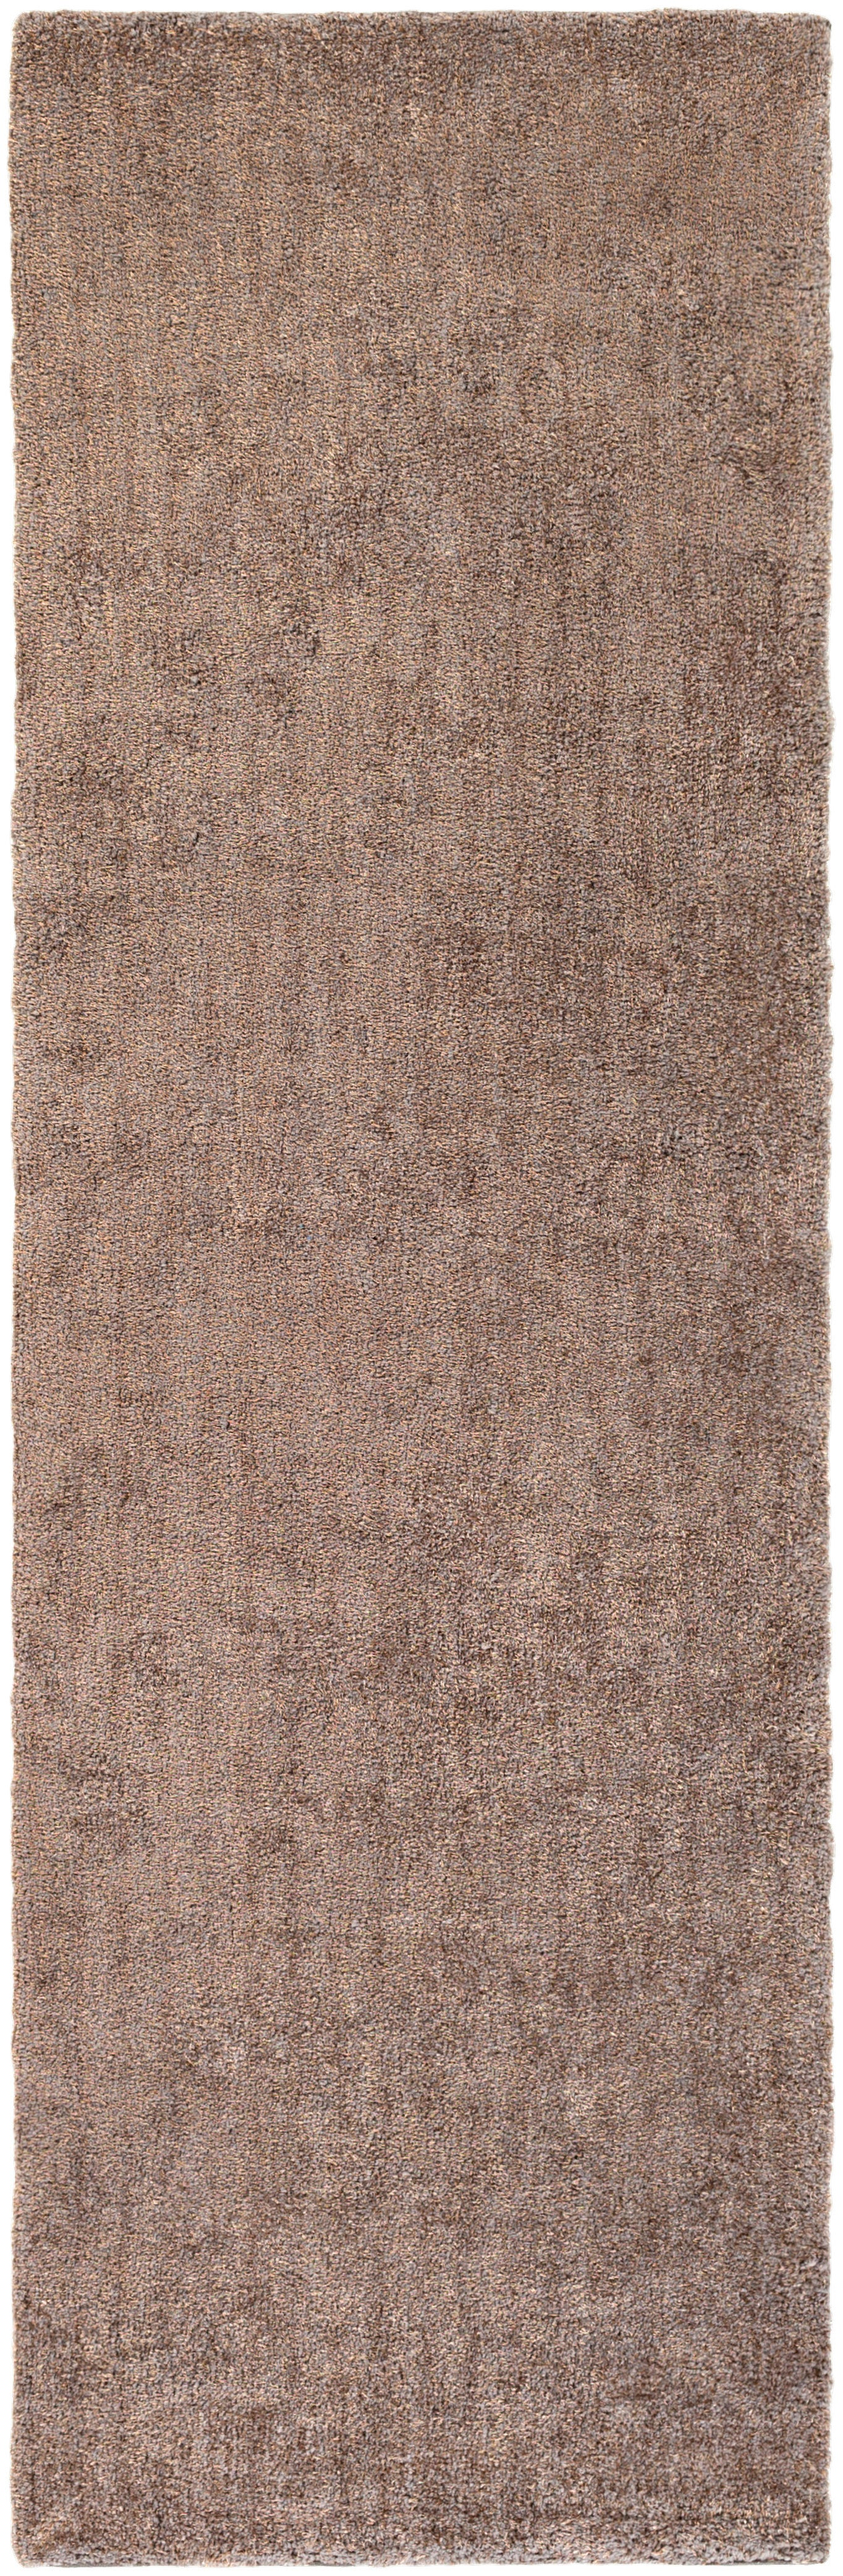 Surya Marvin MRV8002 Brown Area Rug